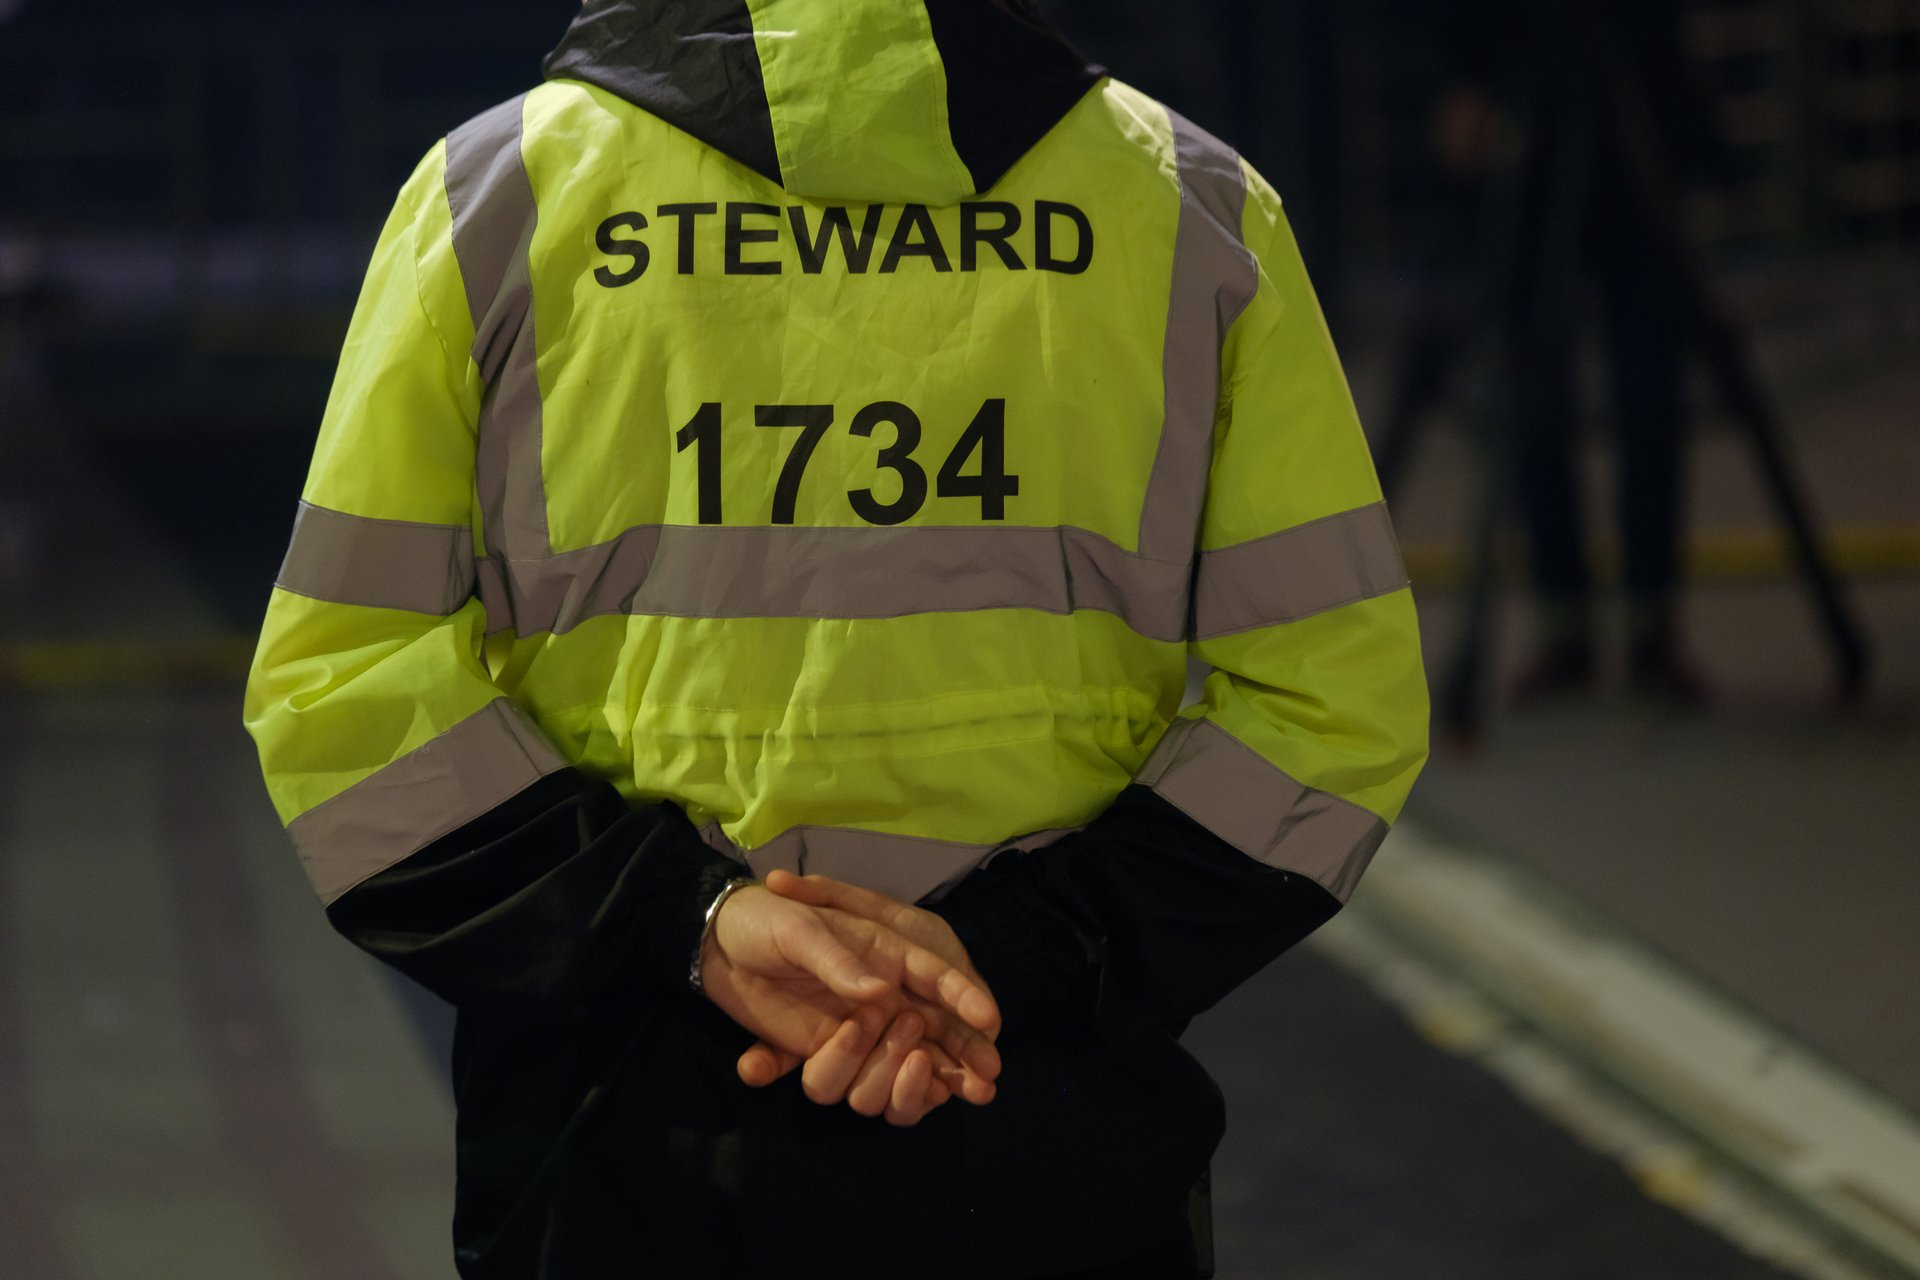 Steward works at an event, back view